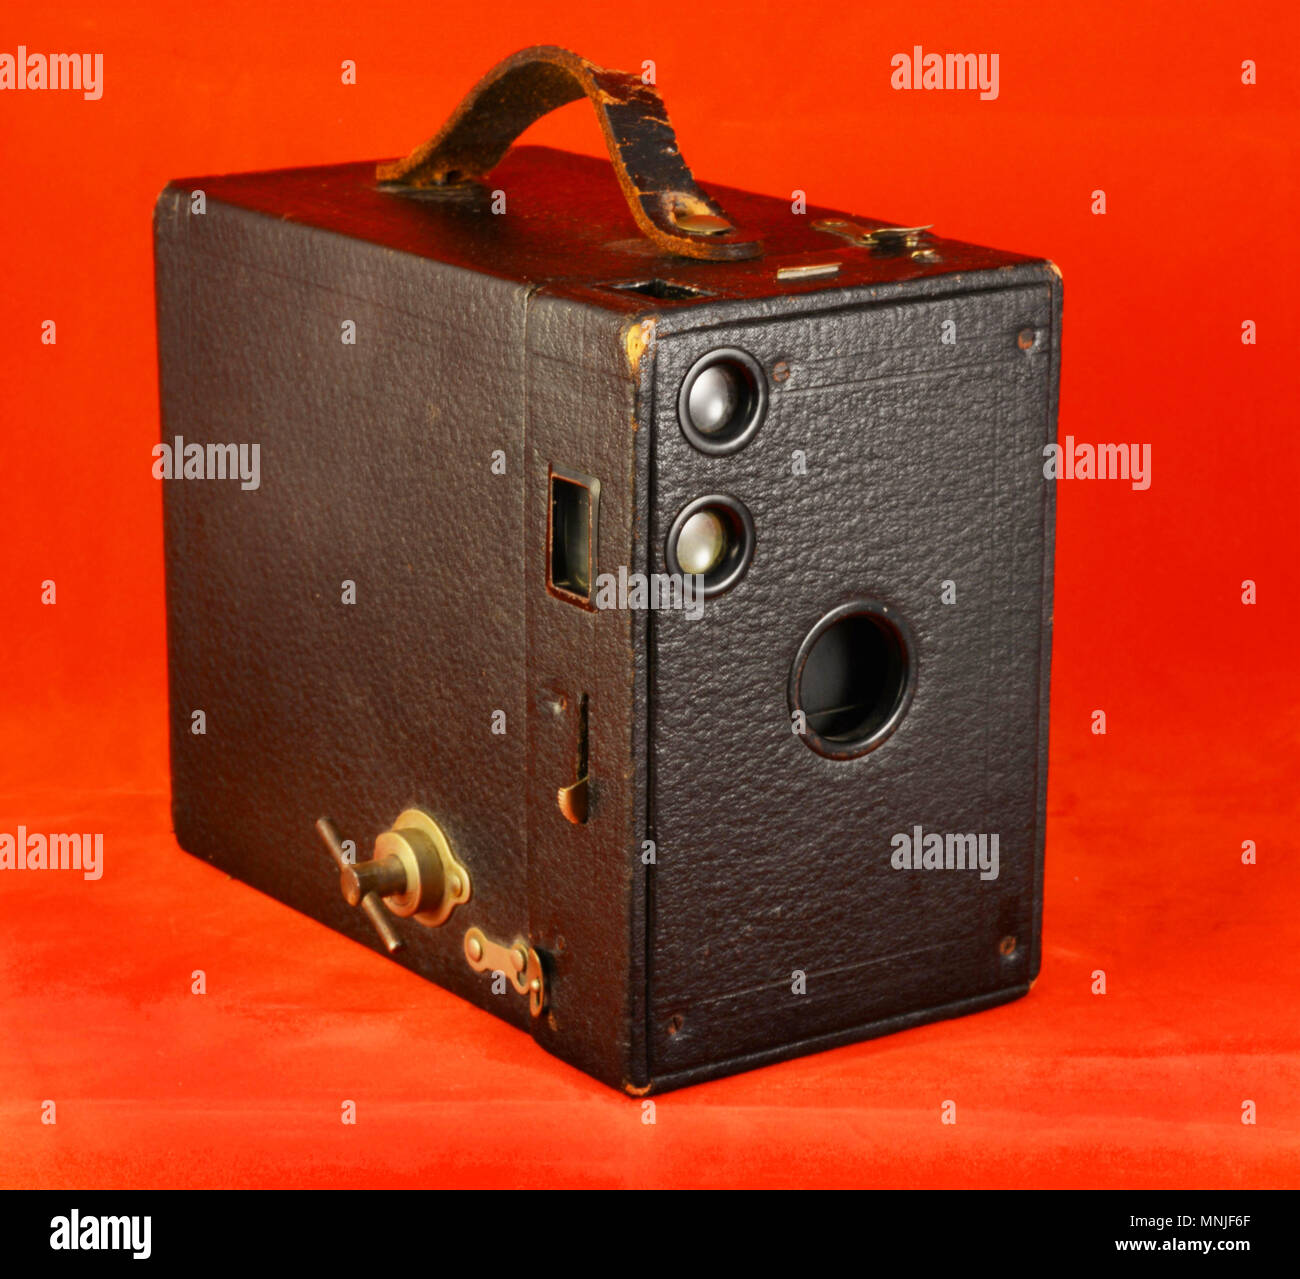 The Kodak No. 2A Brownie Model B is a box camera that uses 116 film, it was introduced in 1907 and manufactured until 1933 by the Eastman Kodak Co. NY - Stock Image